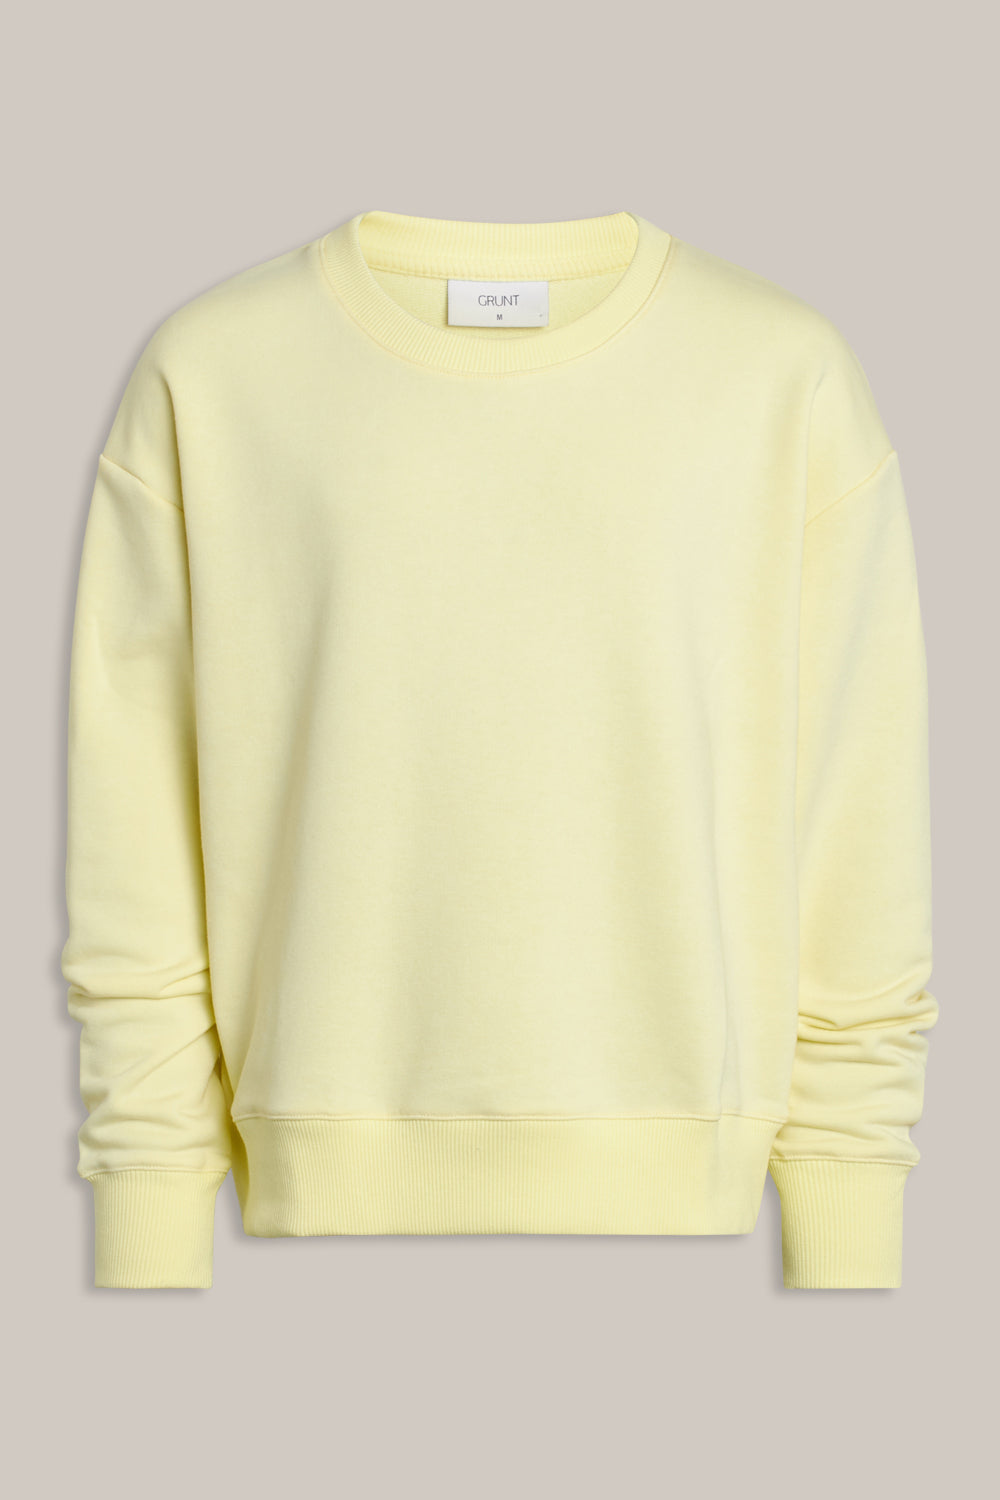 GRUNT OUR Lone Crew Sweat Sweats Yellow